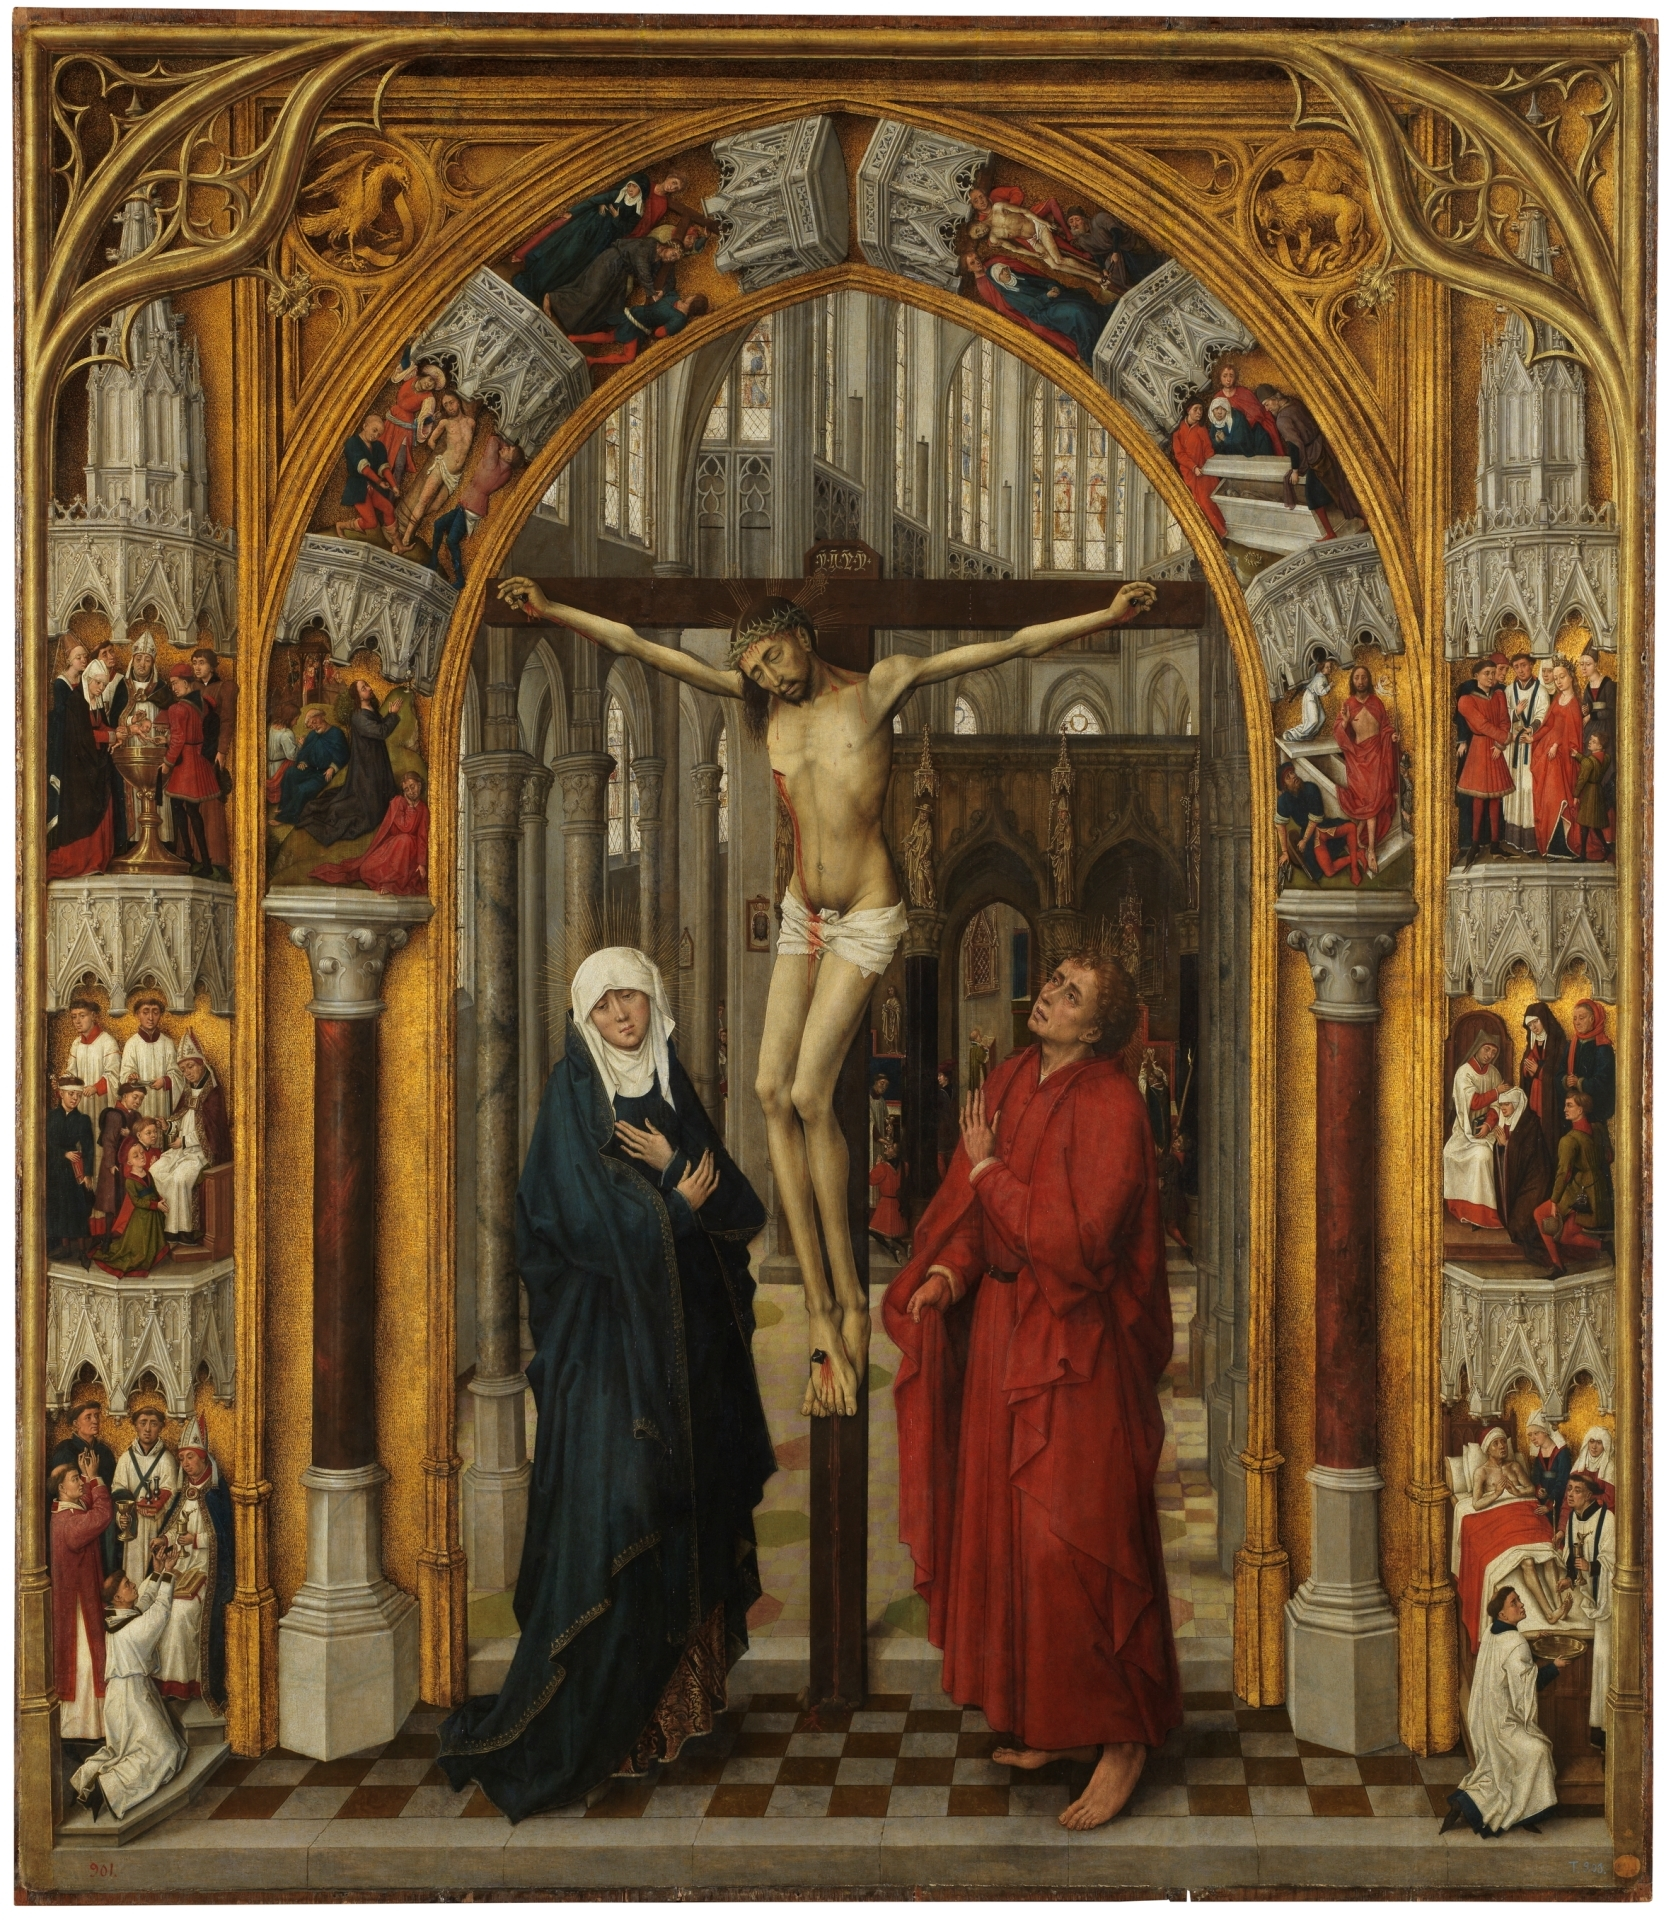 Van_der_Stockt 1450 ca Triptych_of_the_Redemption_-_The_Crucifixion Prado